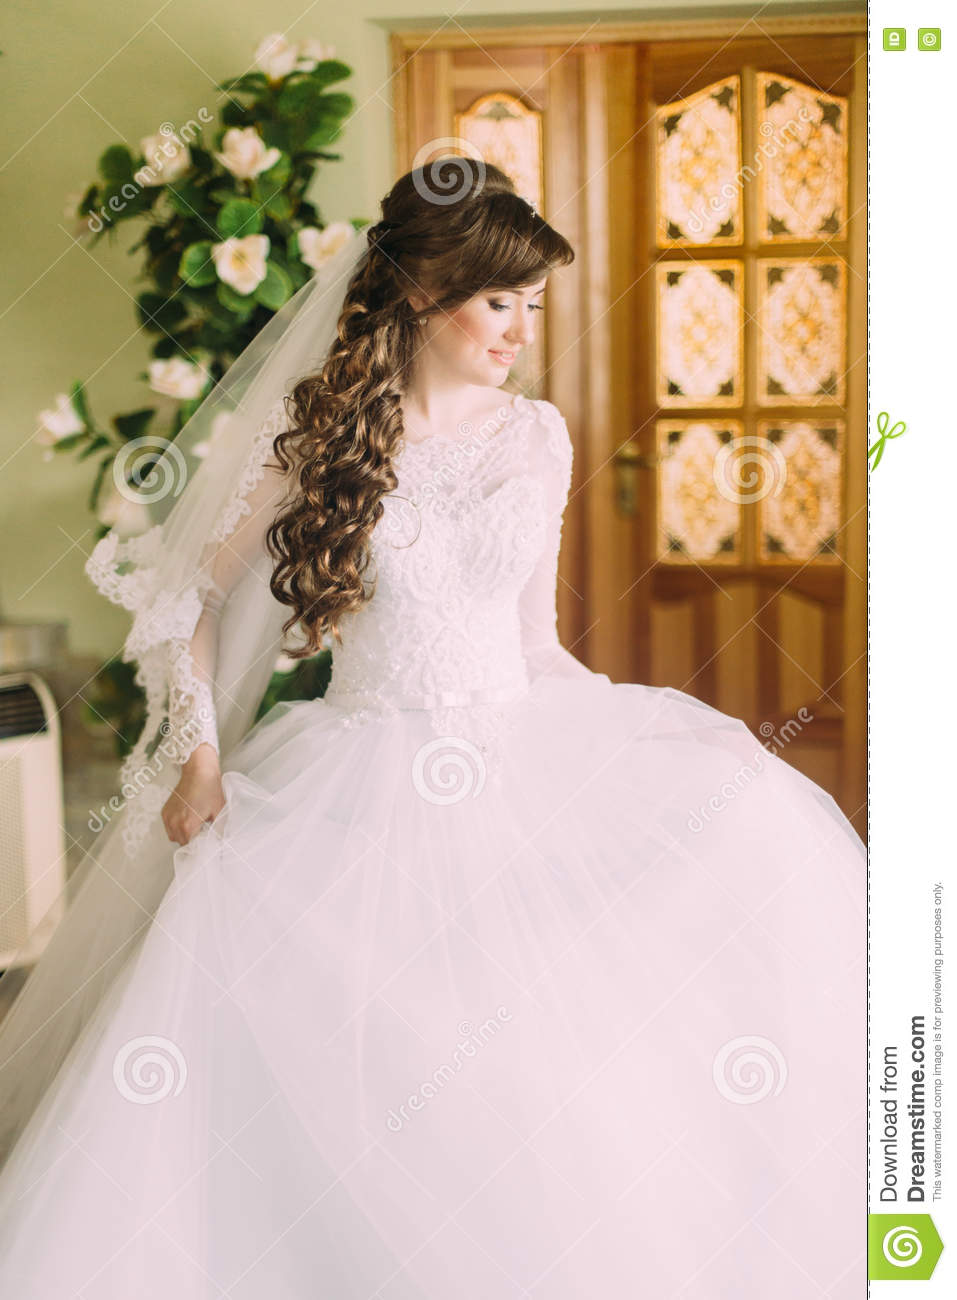 Beautiful Bride In Elegant White Wedding Dress And Veil With Long Curly Hair Posing Indoors Stock Image Image Of Hair Girl 70958207